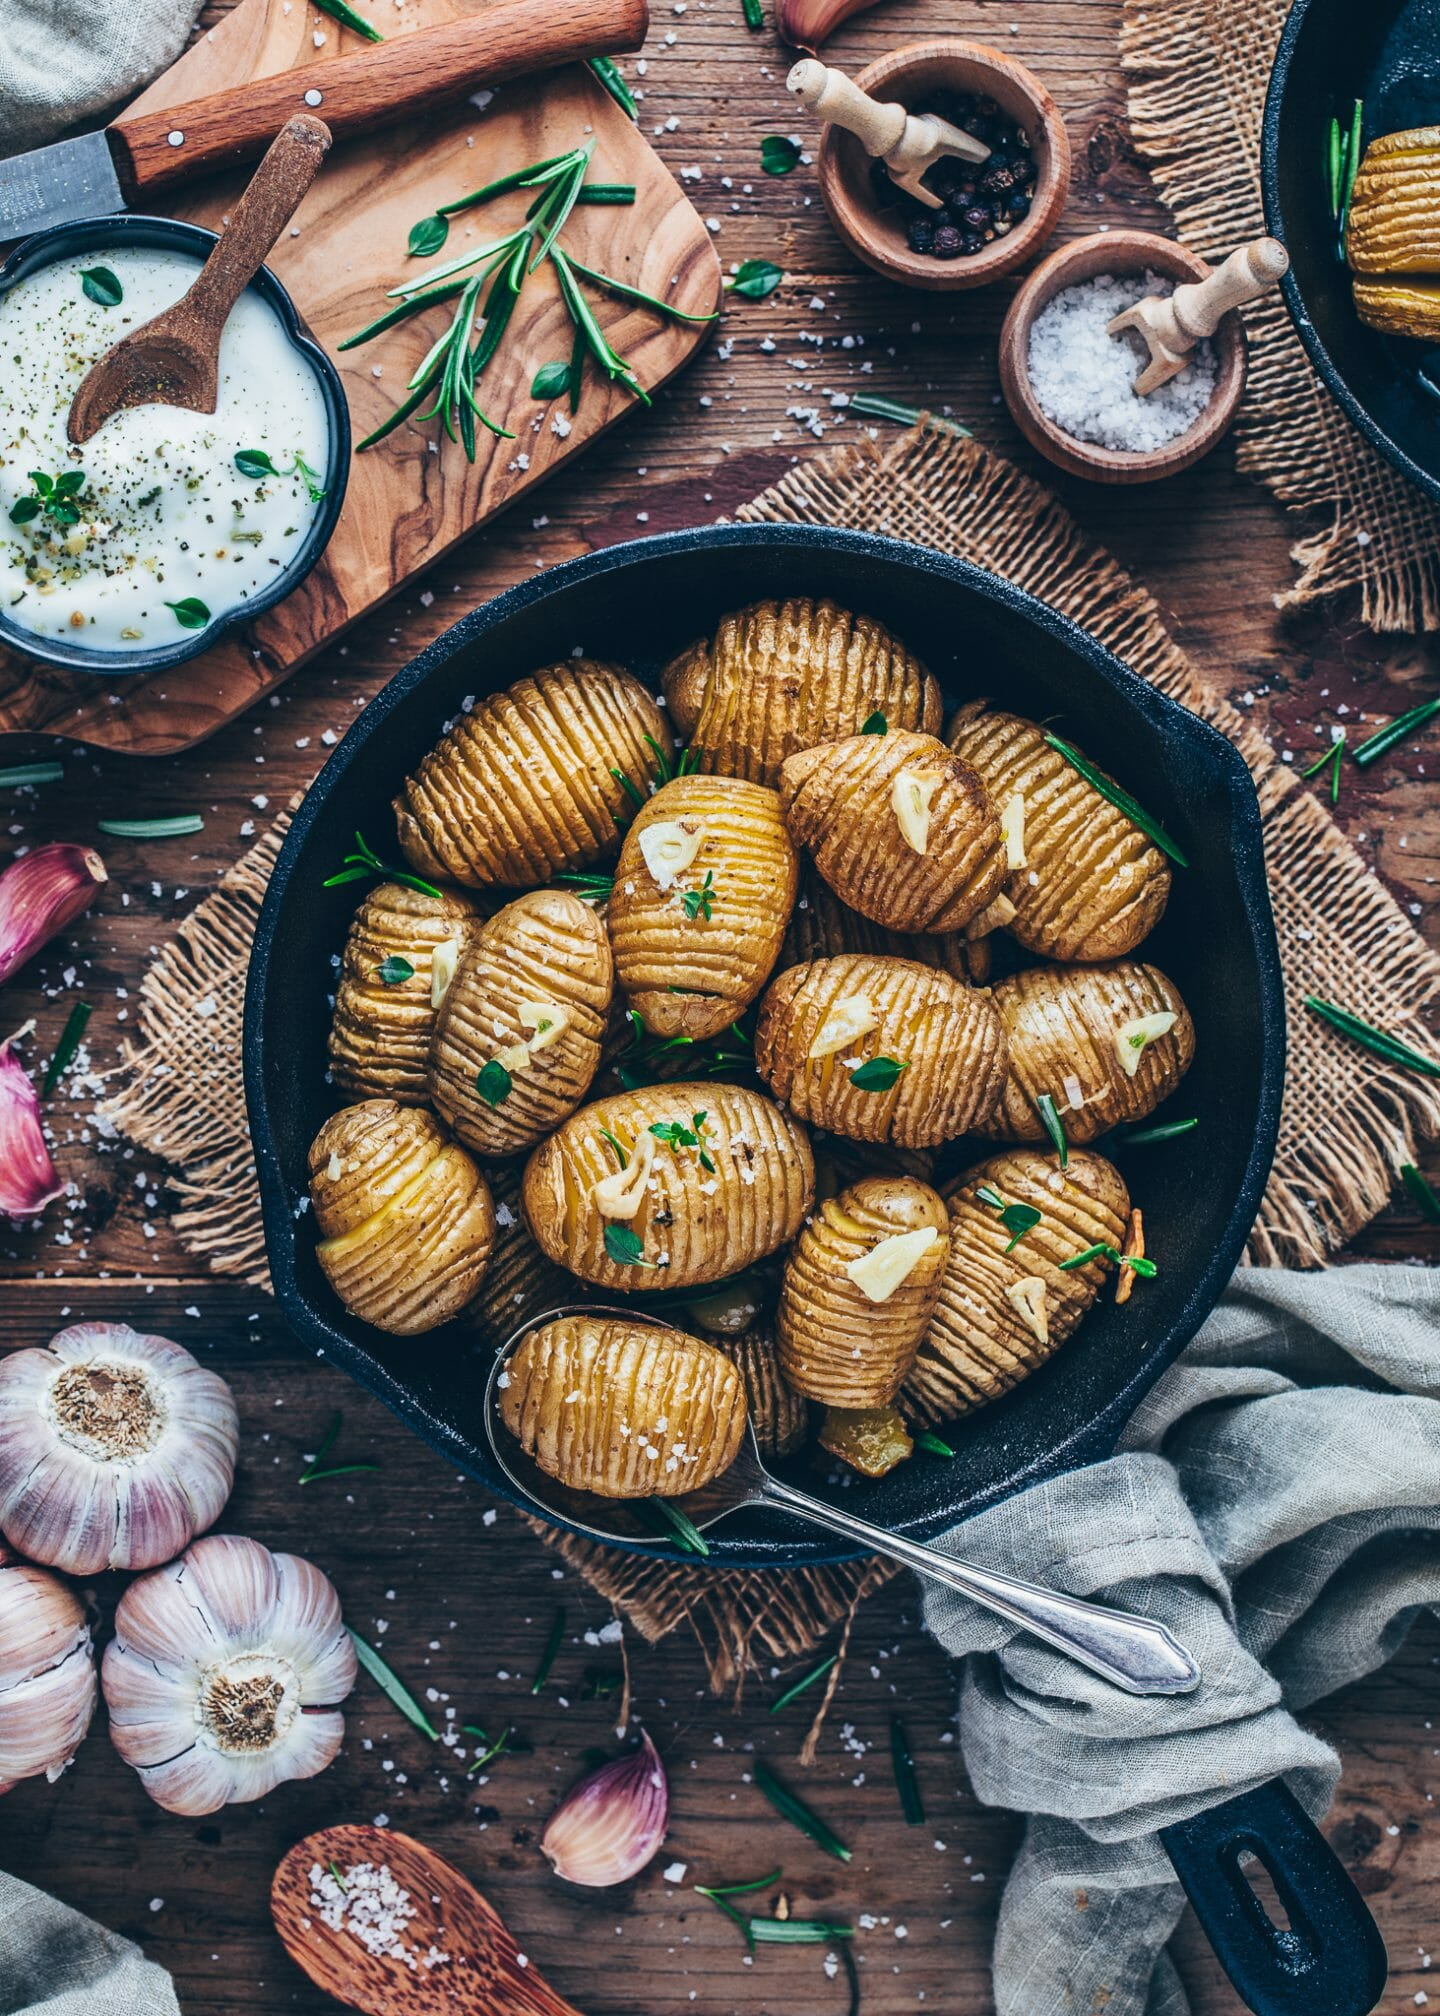 Crispy roasted Hasselback Potatoes with garlic, sea salt and rosemary